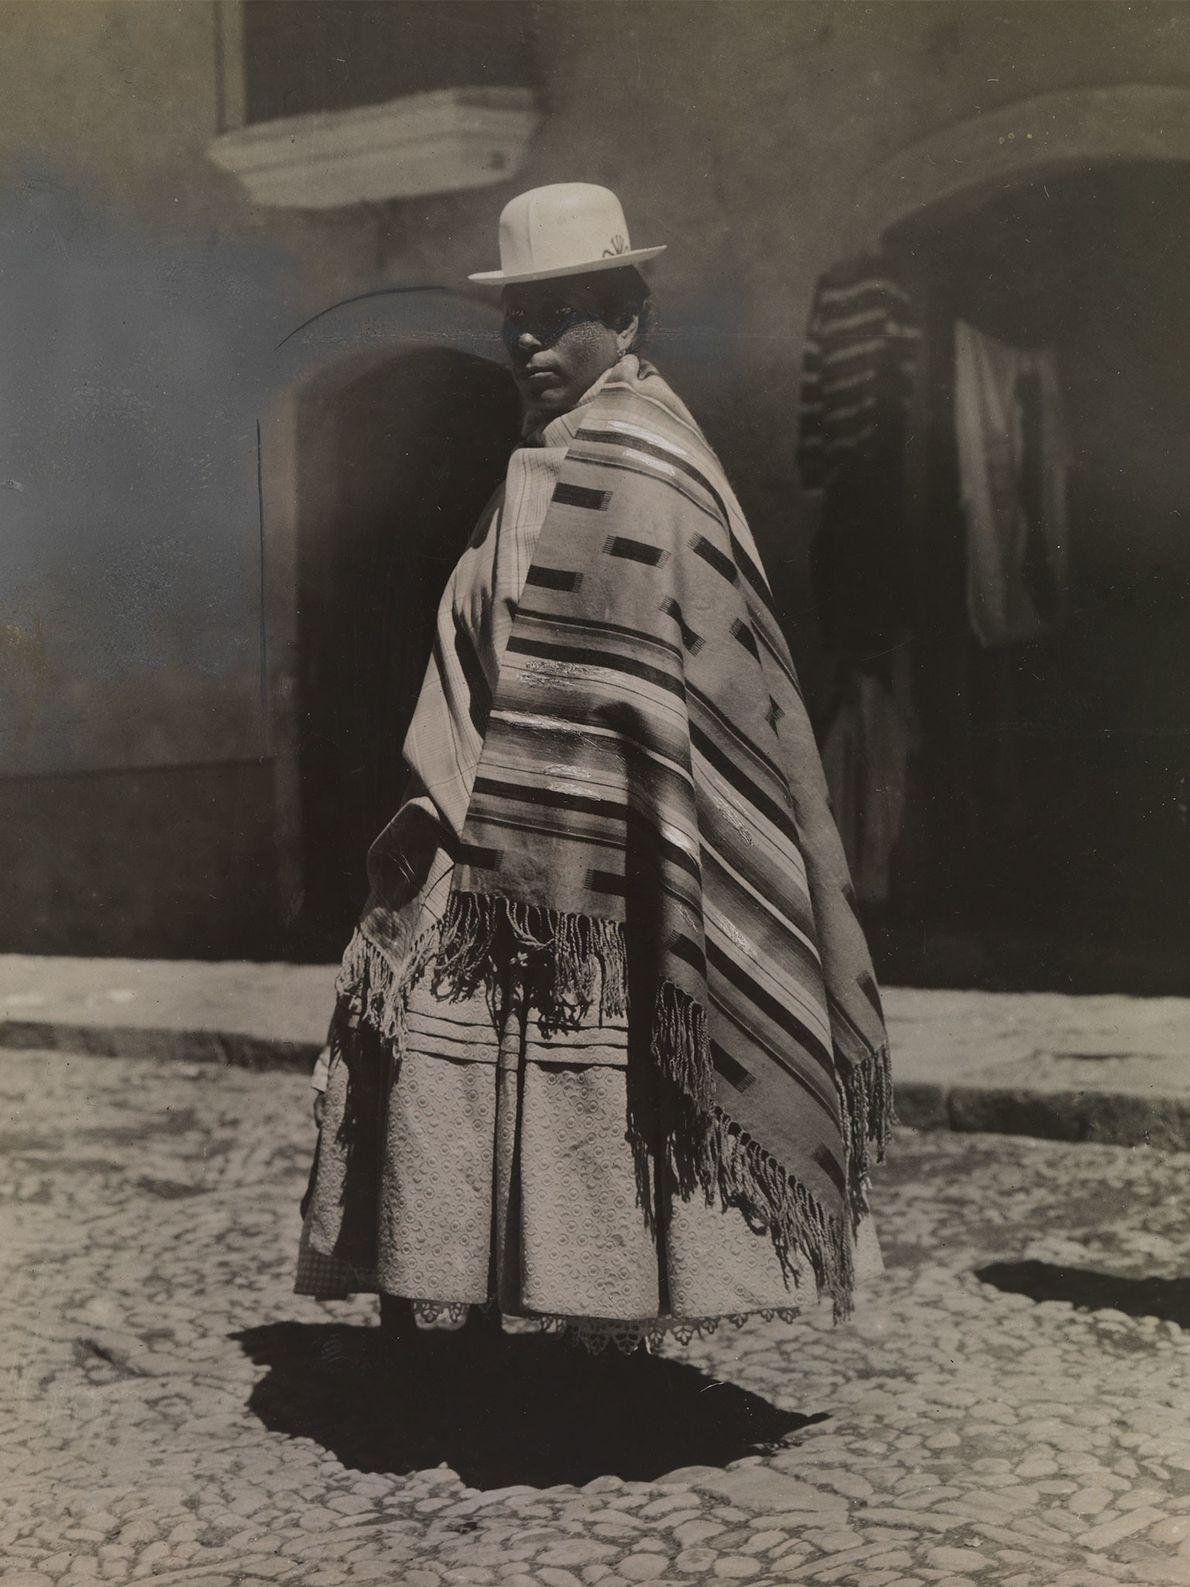 A mestiza girl in a white bowler-style hat, a headpiece often worn by indigenous Bolivian women, ...